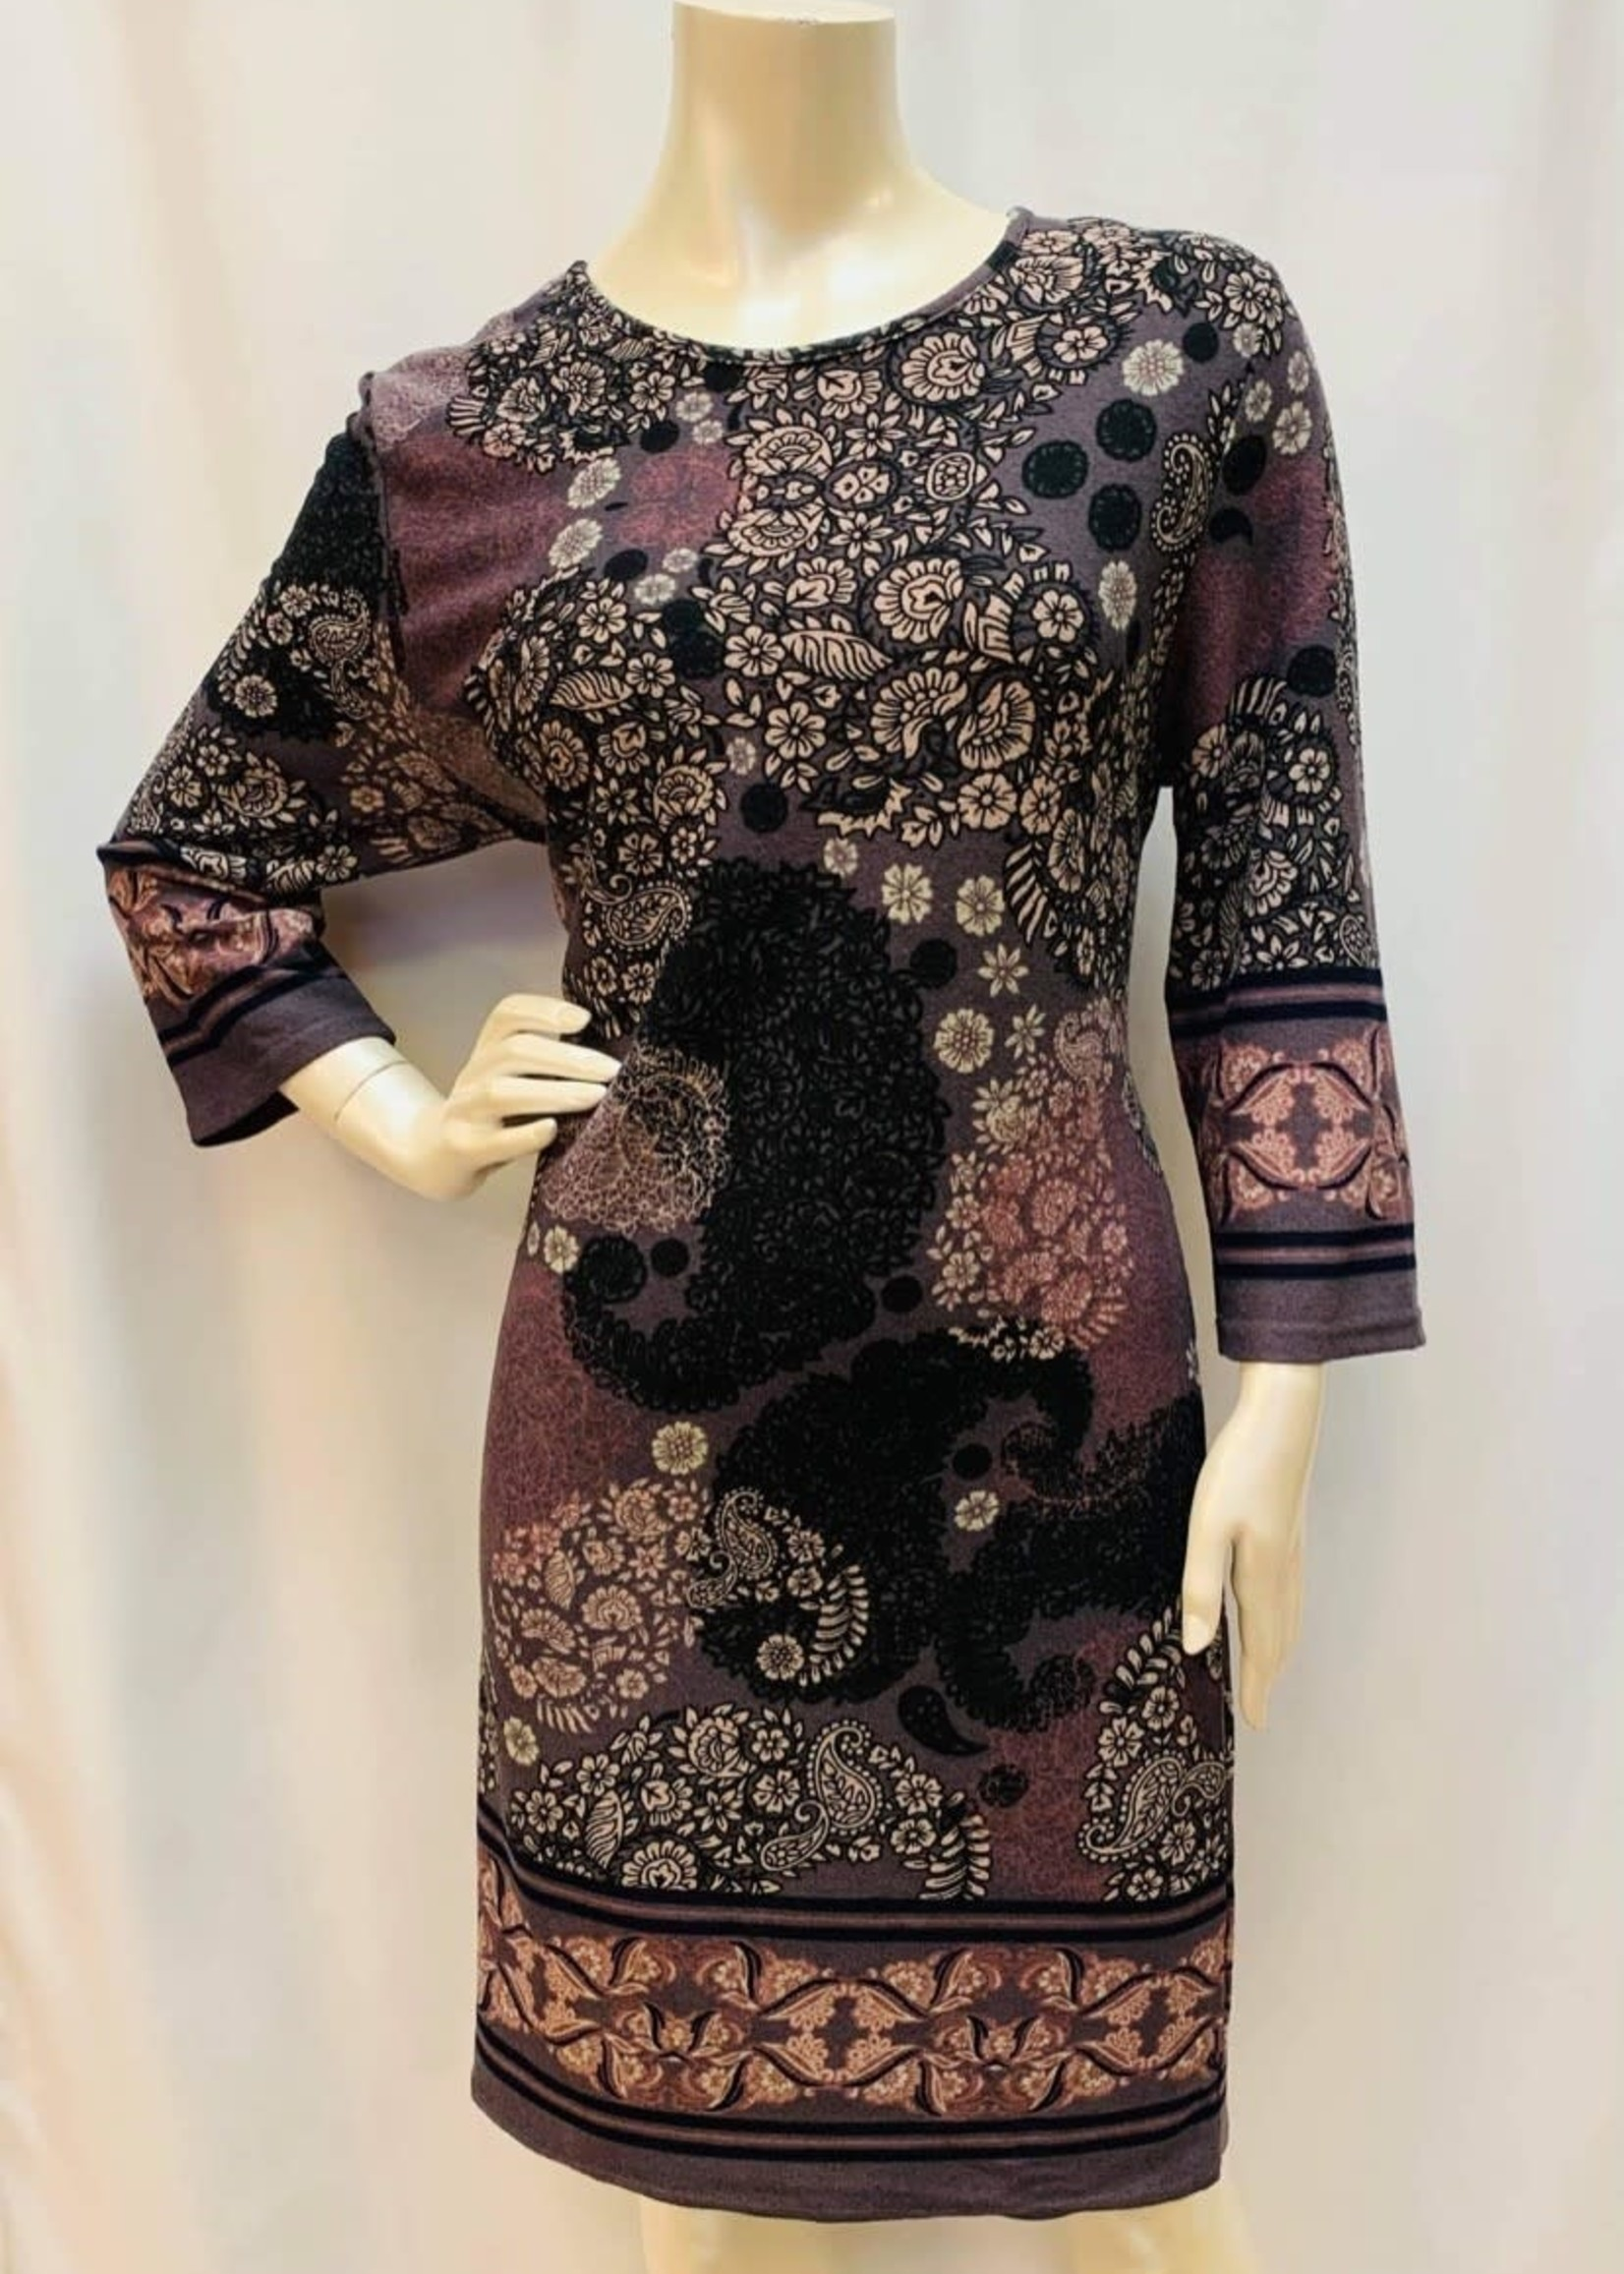 Papillon Dress, available in two patterns